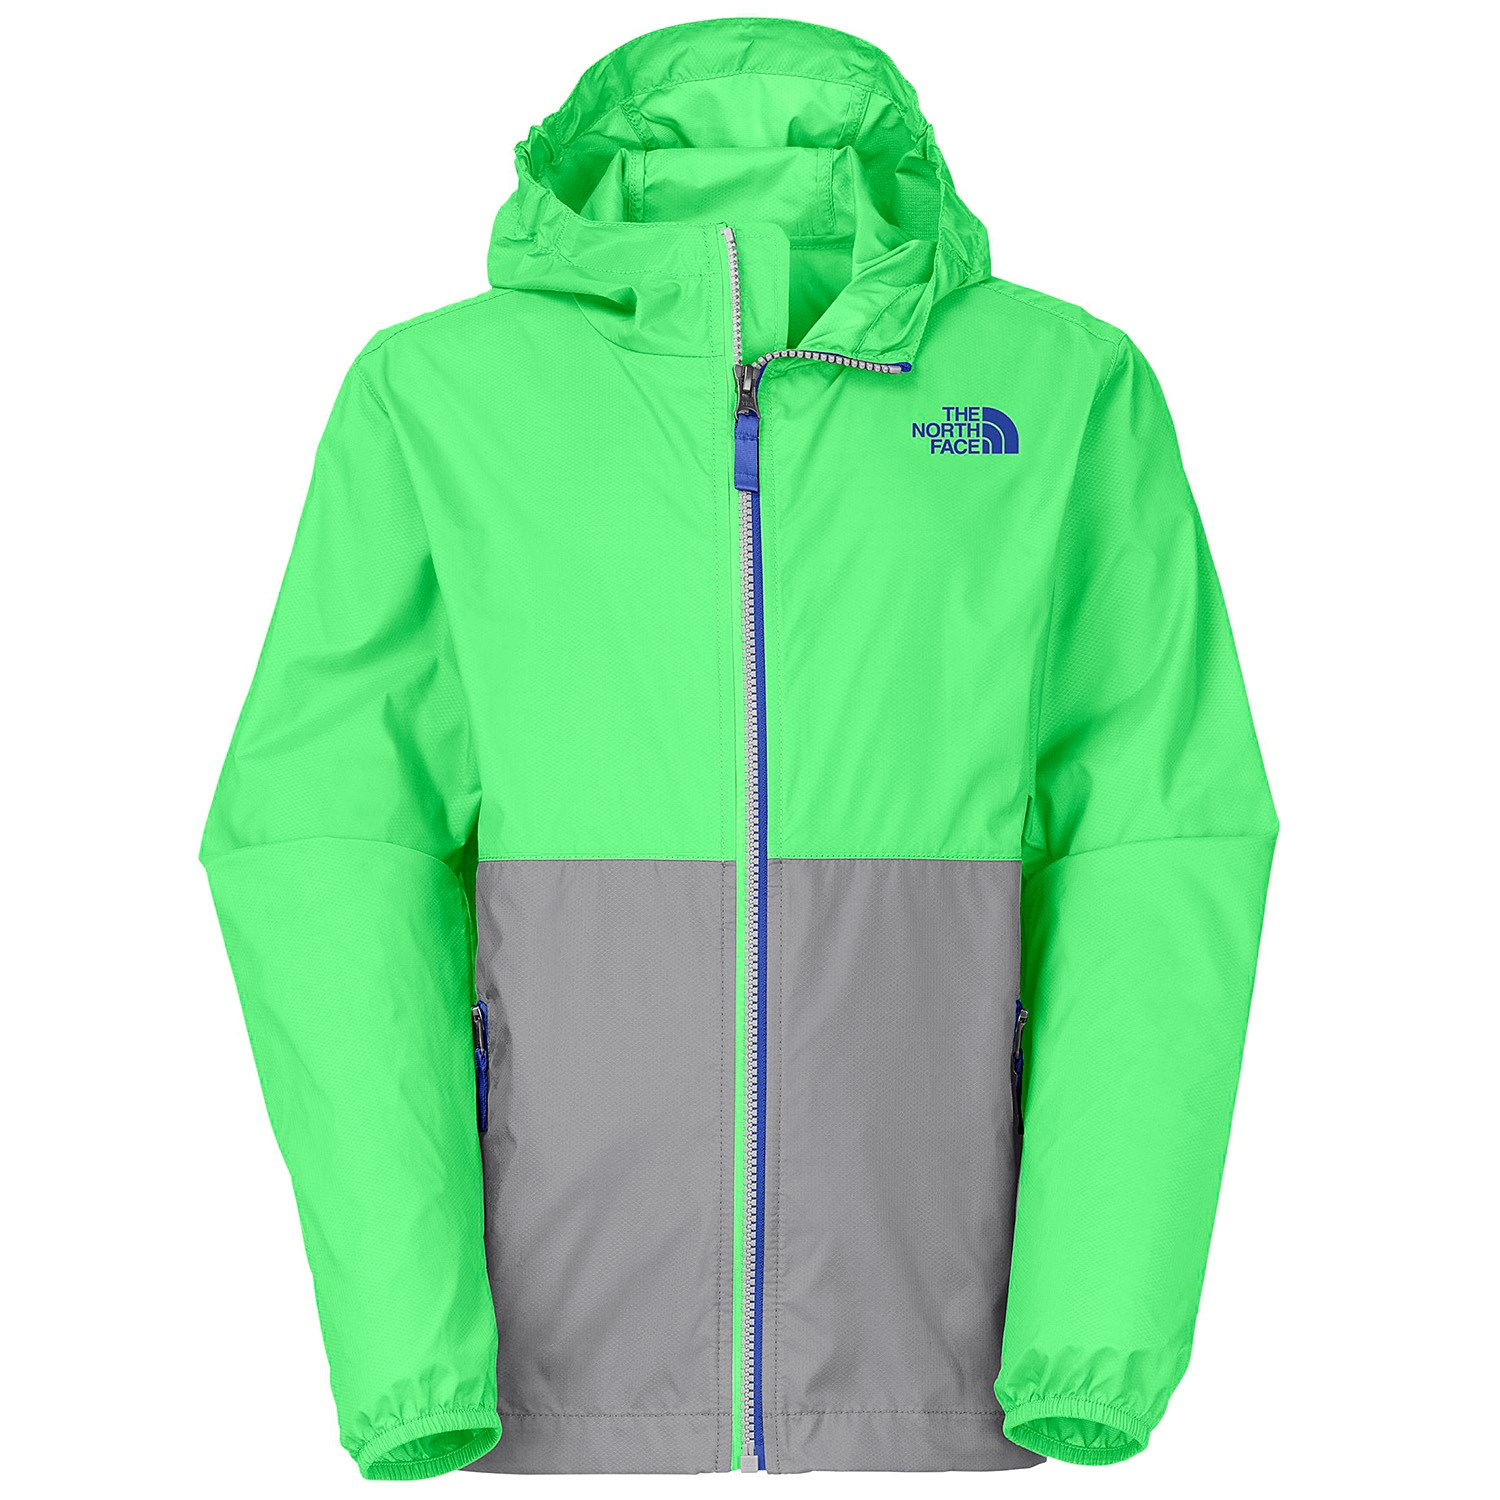 The North Face Flurry Wind